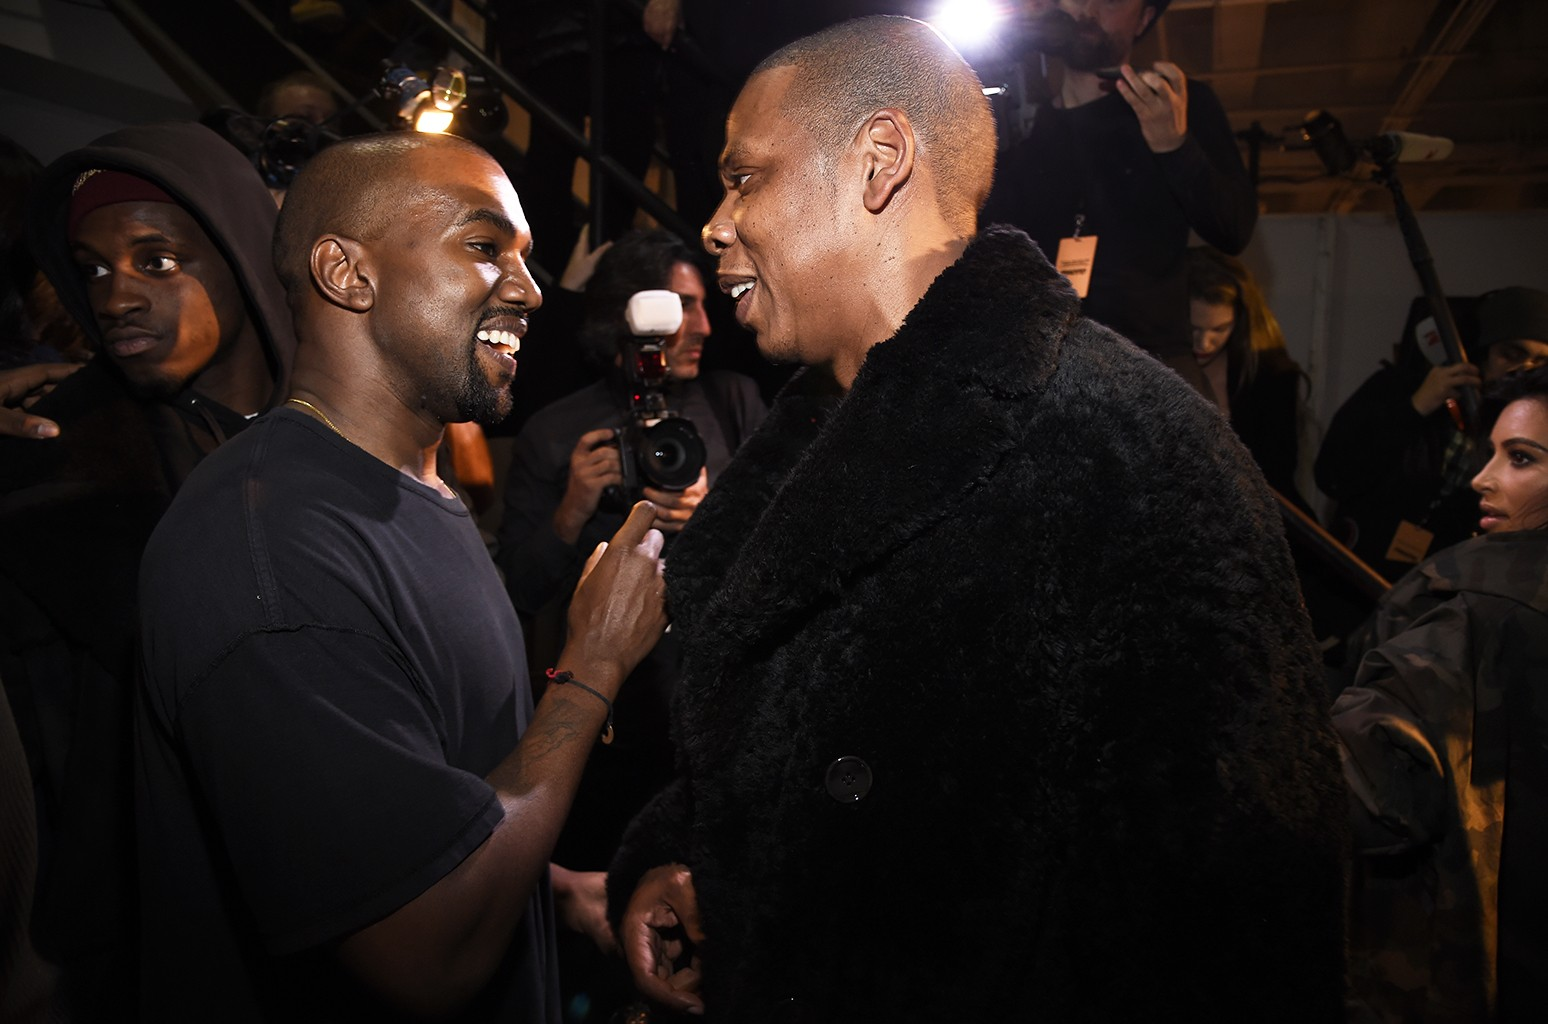 Kanye West and Jay Z at Skylight Clarkson Sq on Feb. 12, 2015 in New York City.